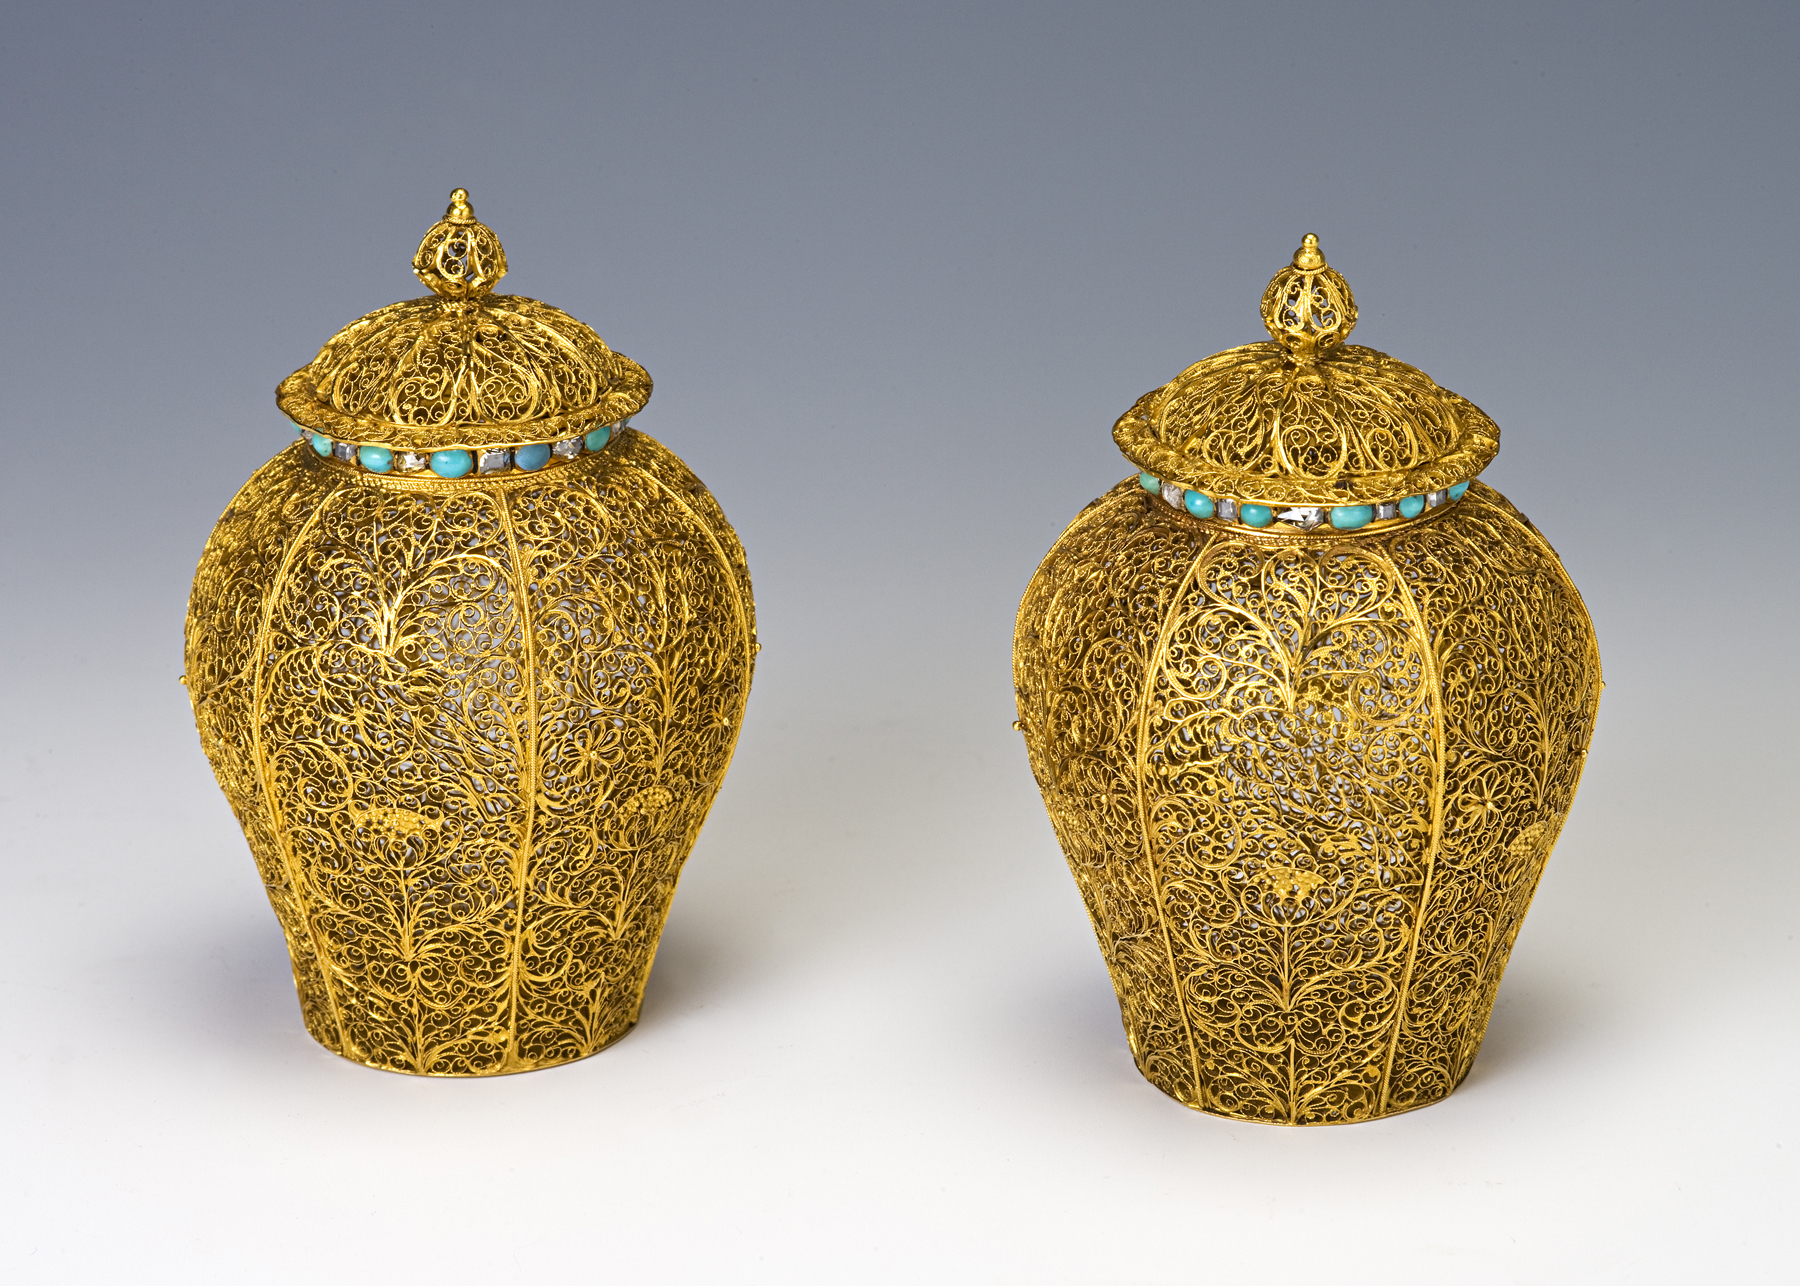 A pair of gold filigree baluster vases and covers, late 17th Century.